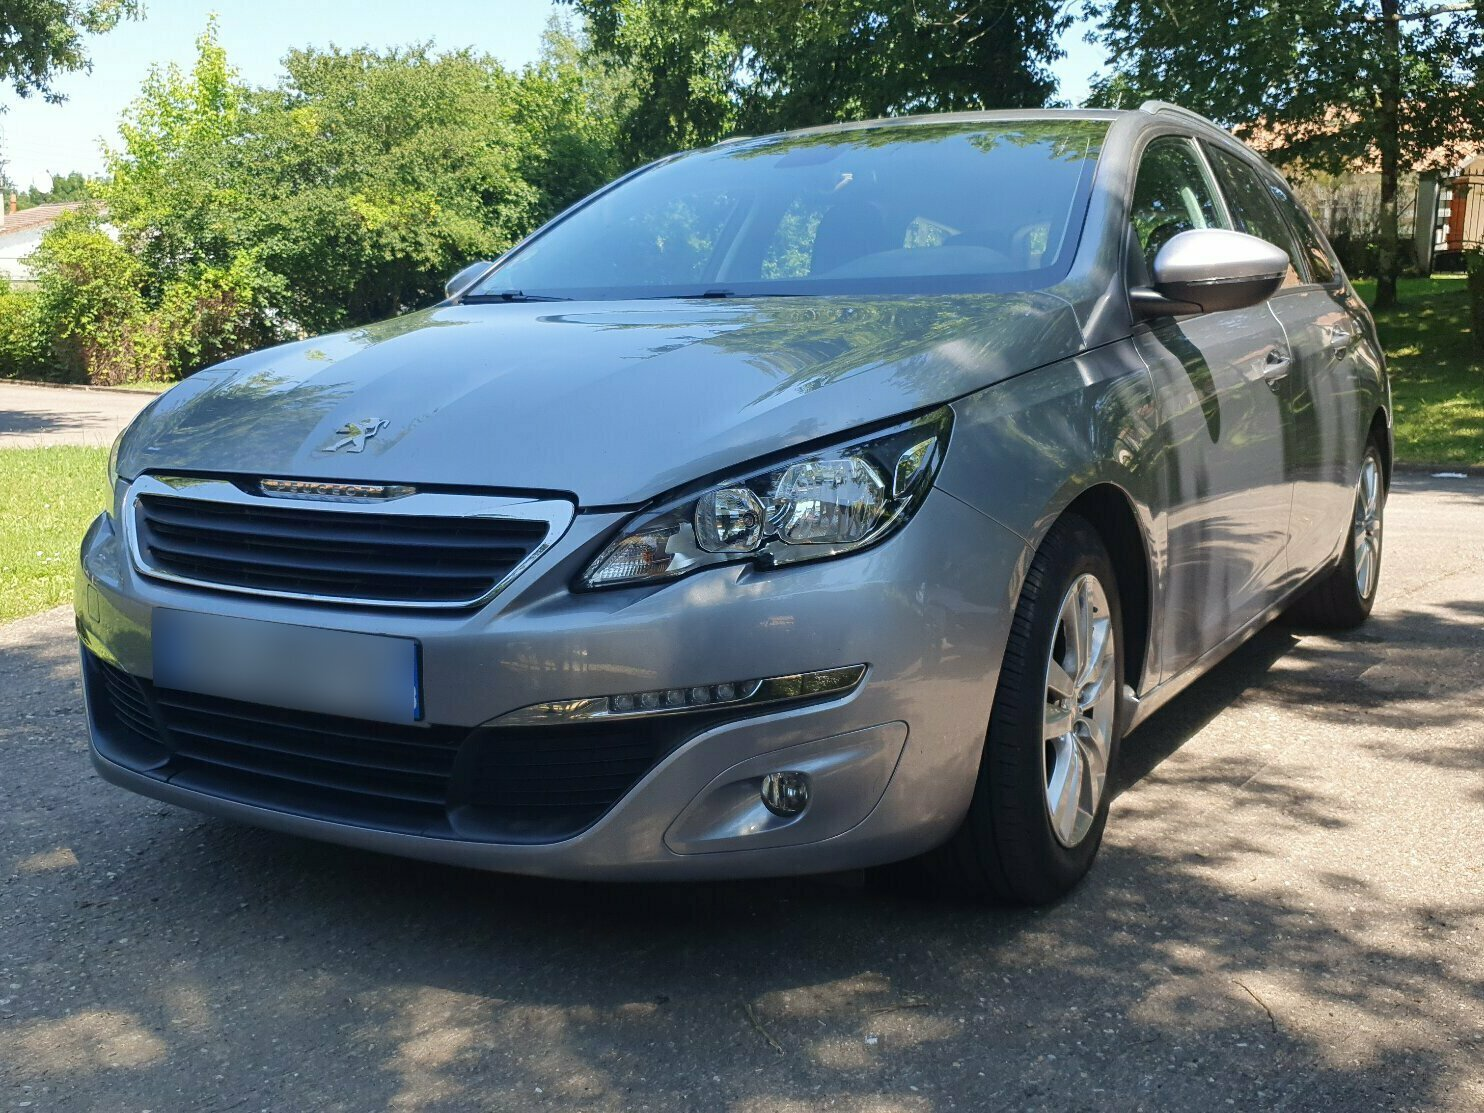 PEUGEOT 308 SW 1.6 BLUEHDI 120 BUSINESS PACK